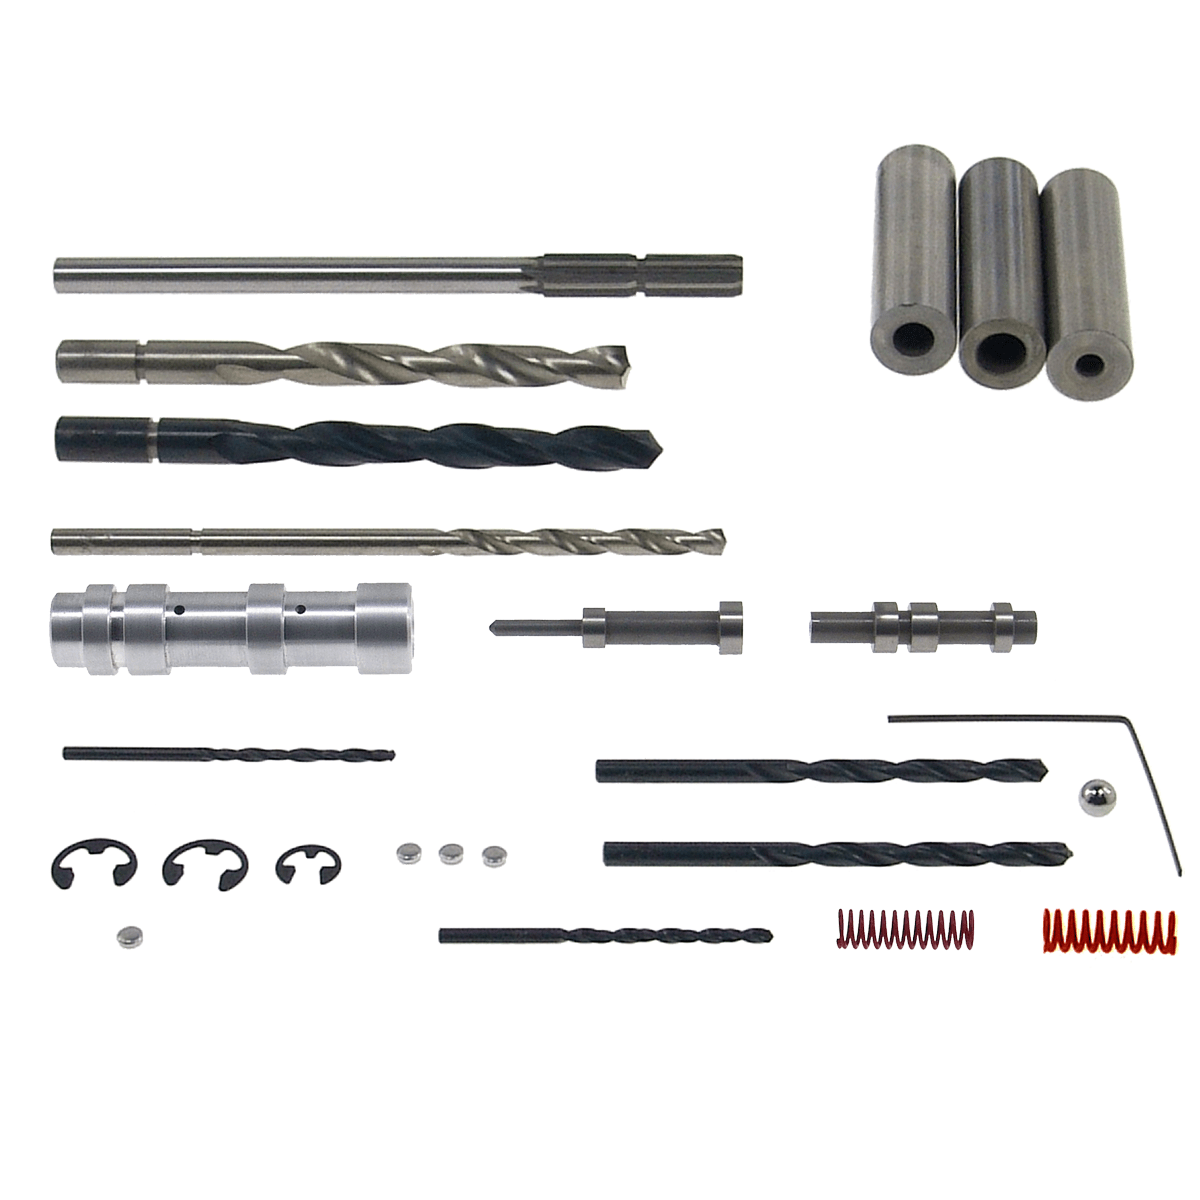 2004r lock up kit with tools